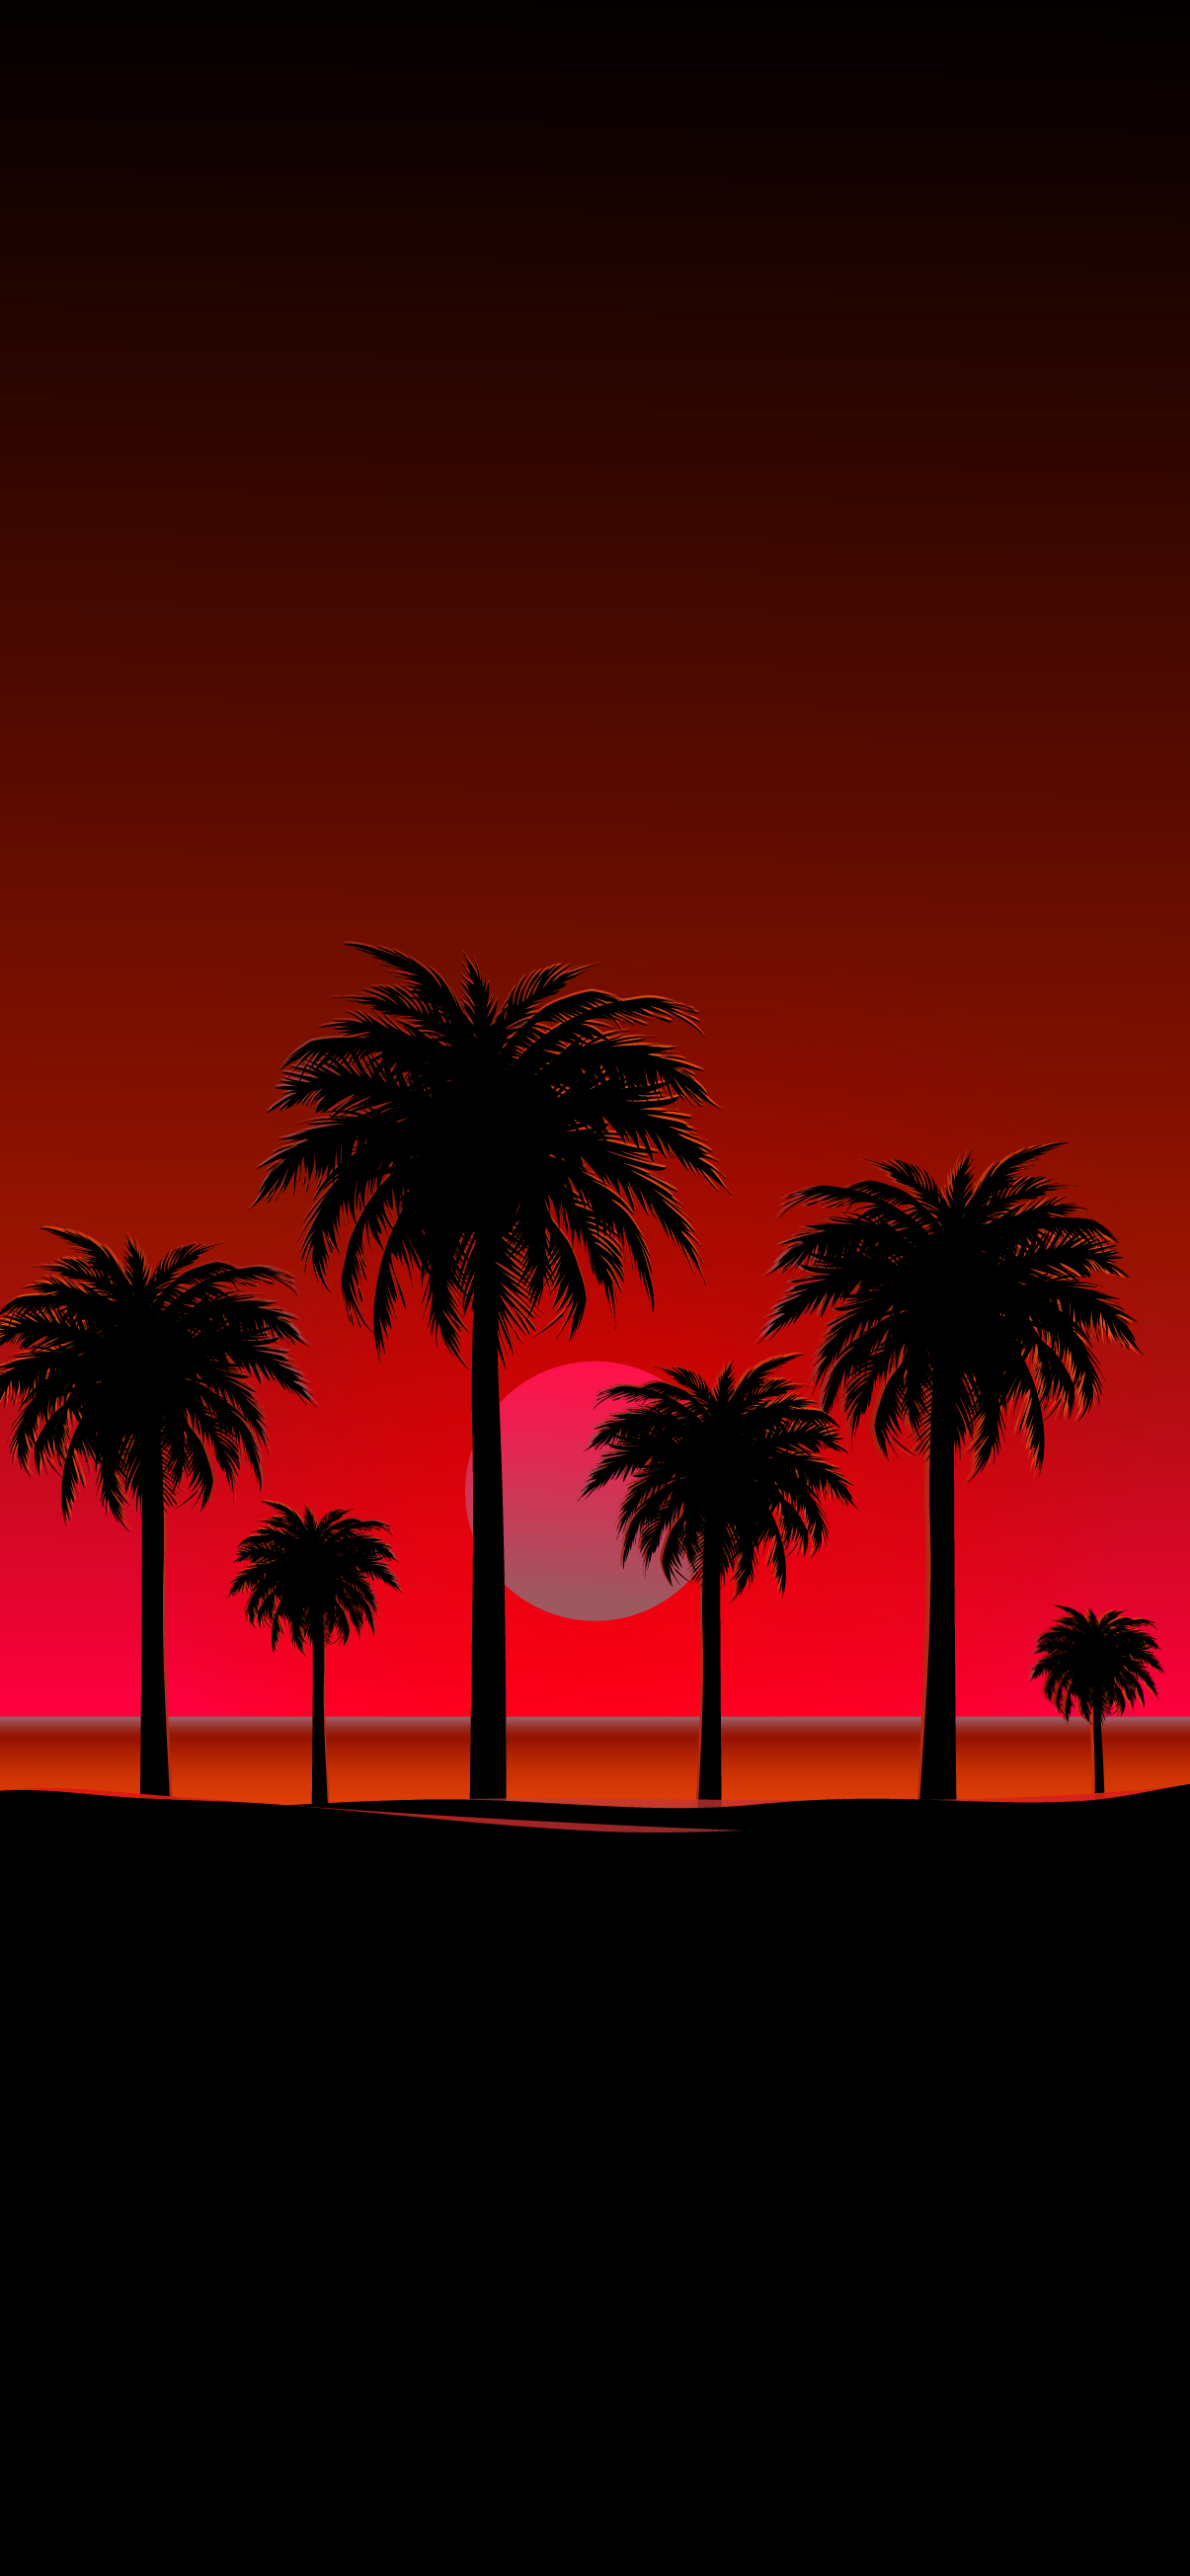 Beach sunset with palm silhouettes amoled oled black wallpaper background iphone new android